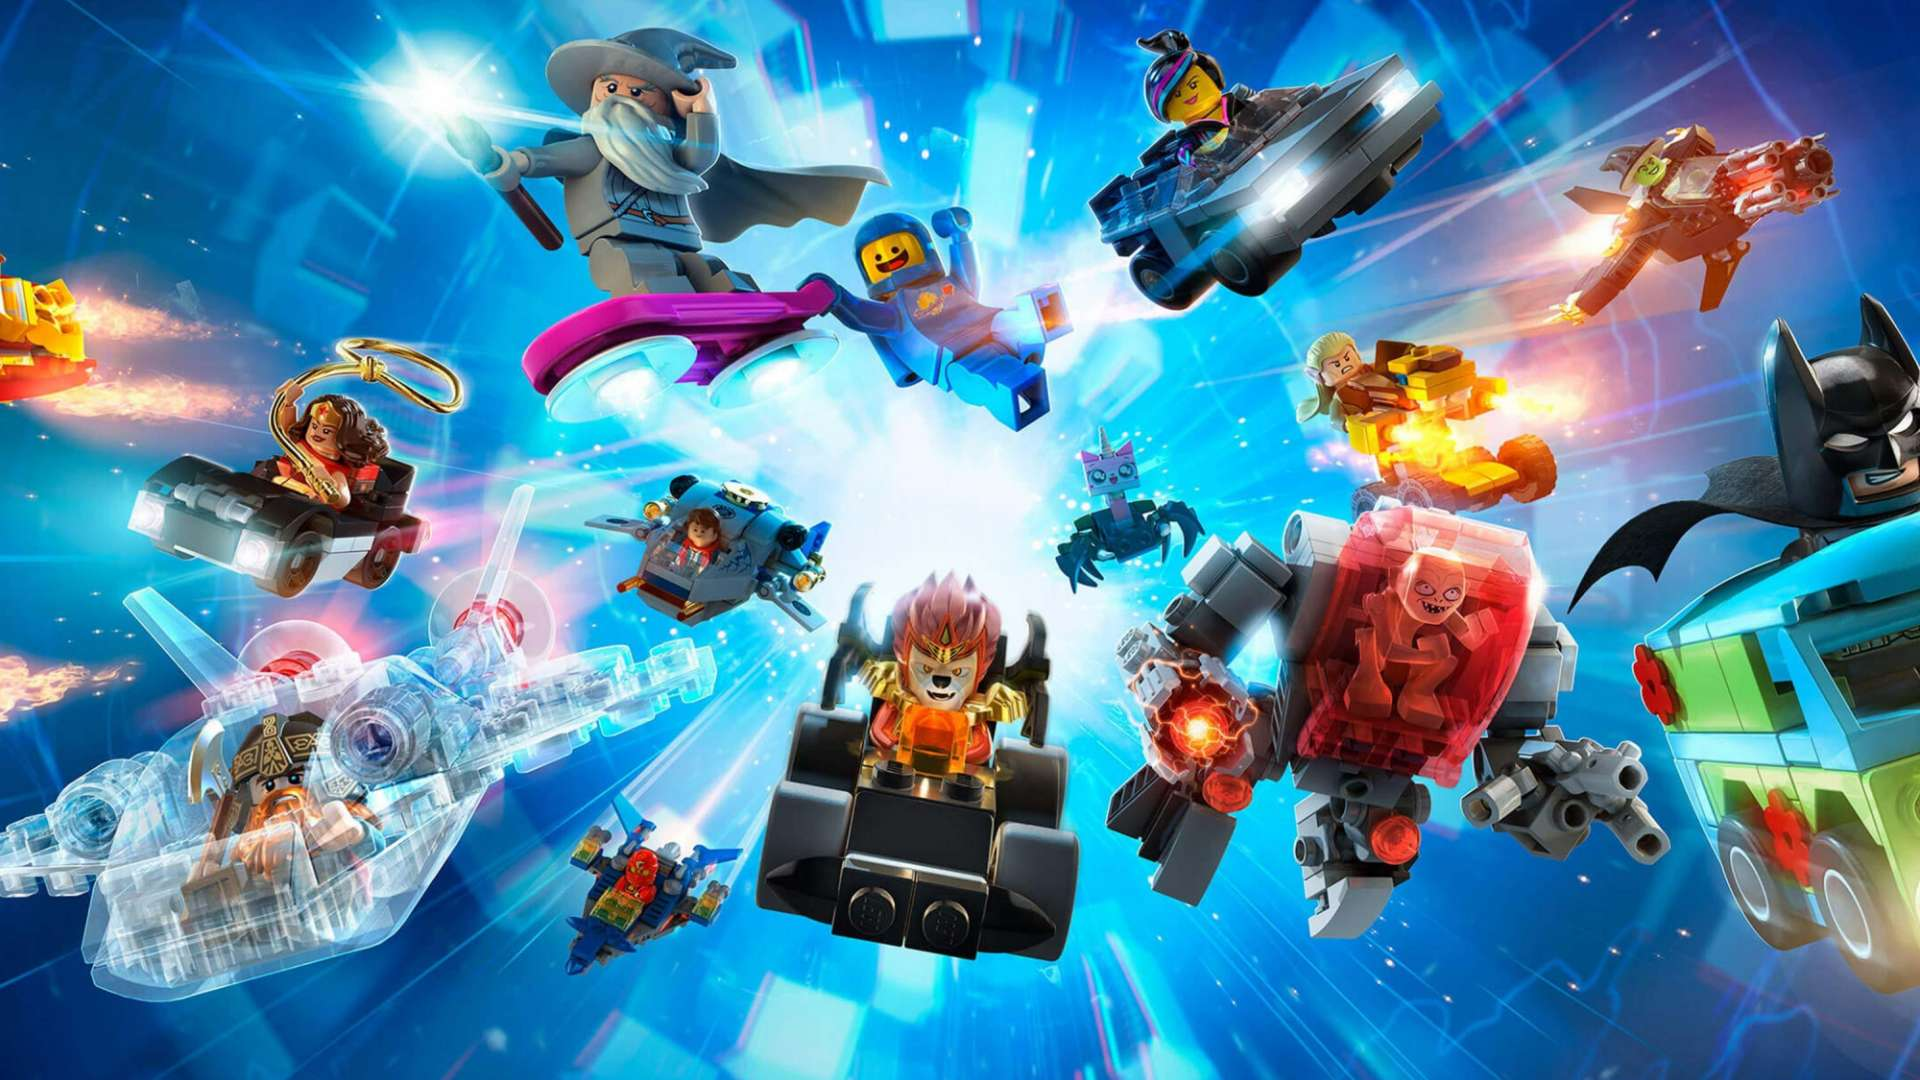 Lego Dimensions allows the players to unlock game levels using plastic characters